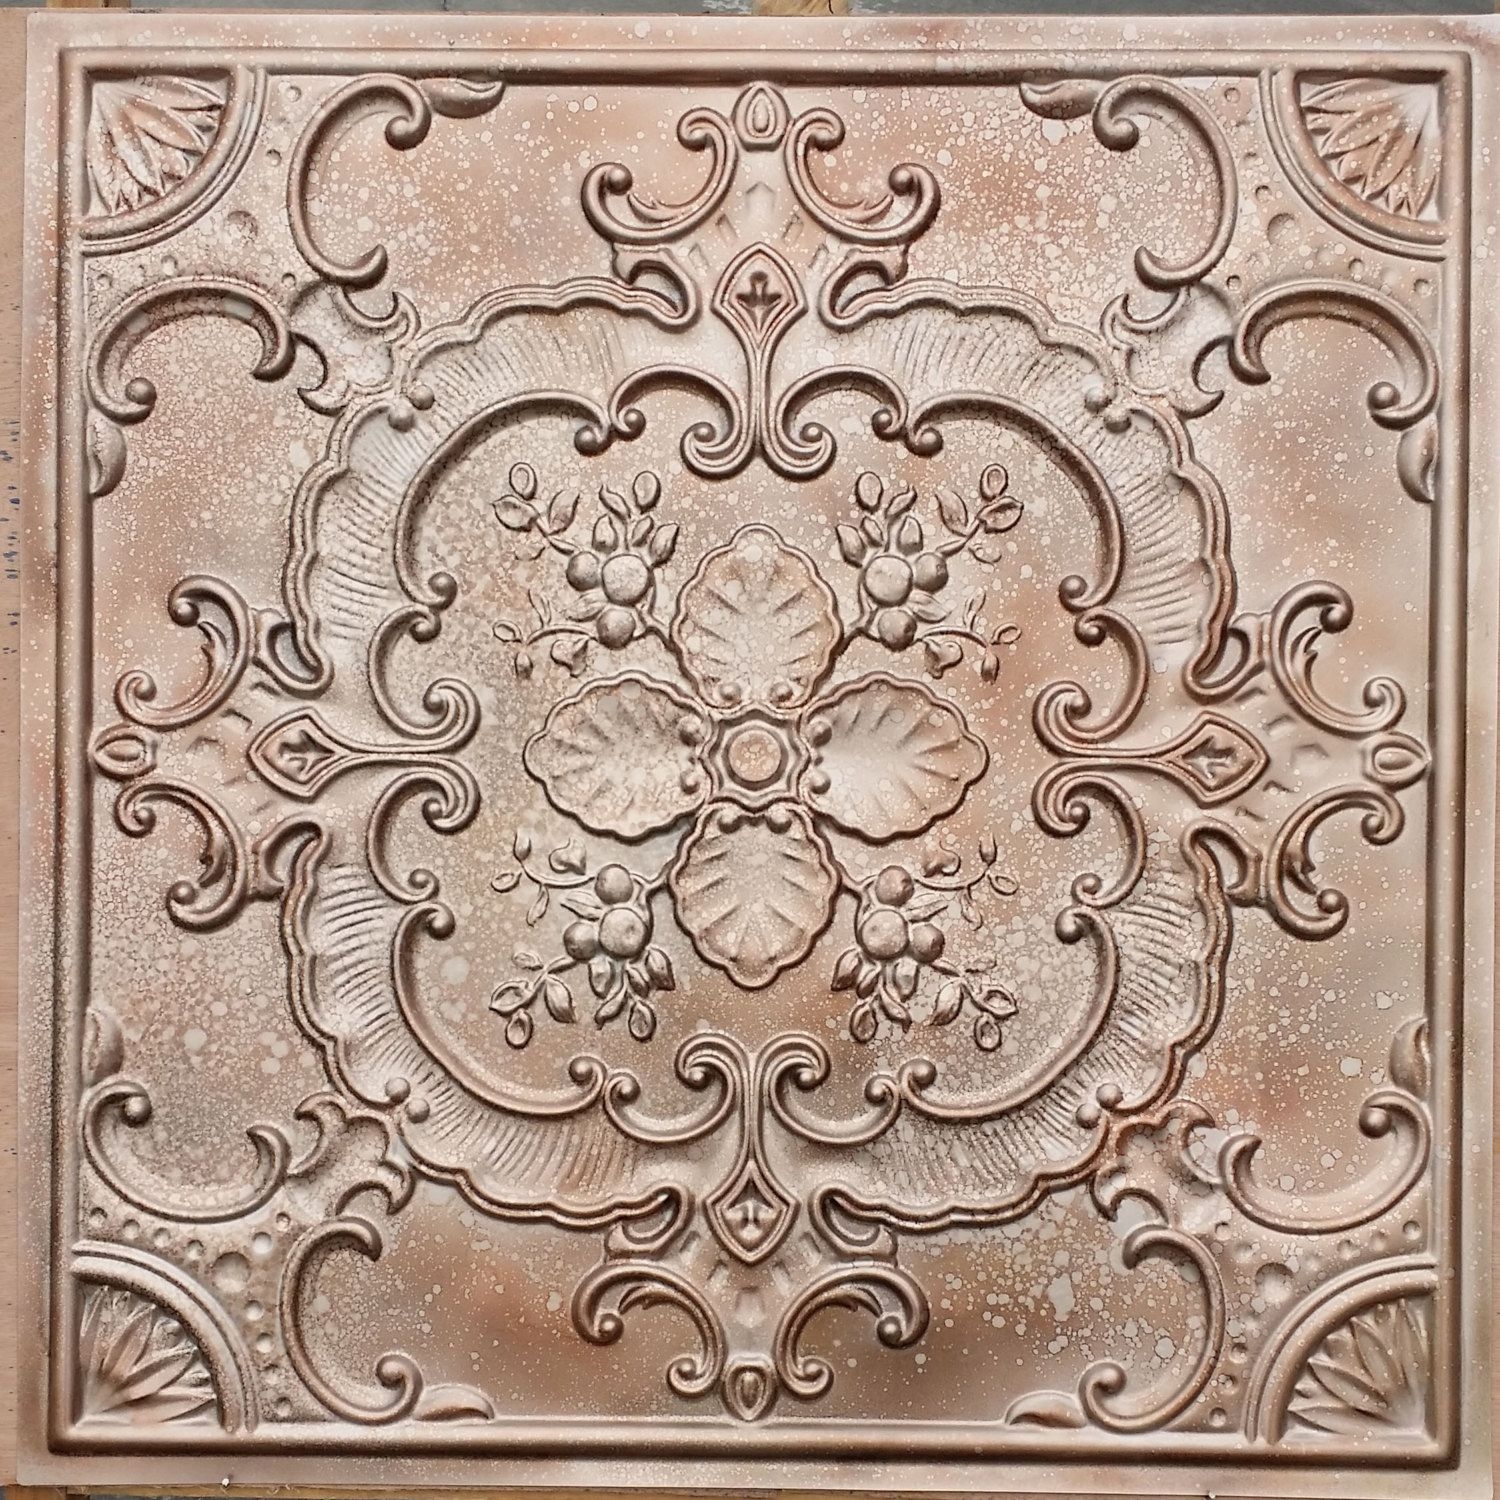 Pl19 faux tin finish metalline copper ceiling tiles mix metal 3d pl19 faux tin finish metalline copper ceiling tiles mix metal 3d embossed photography background wall panels dailygadgetfo Image collections